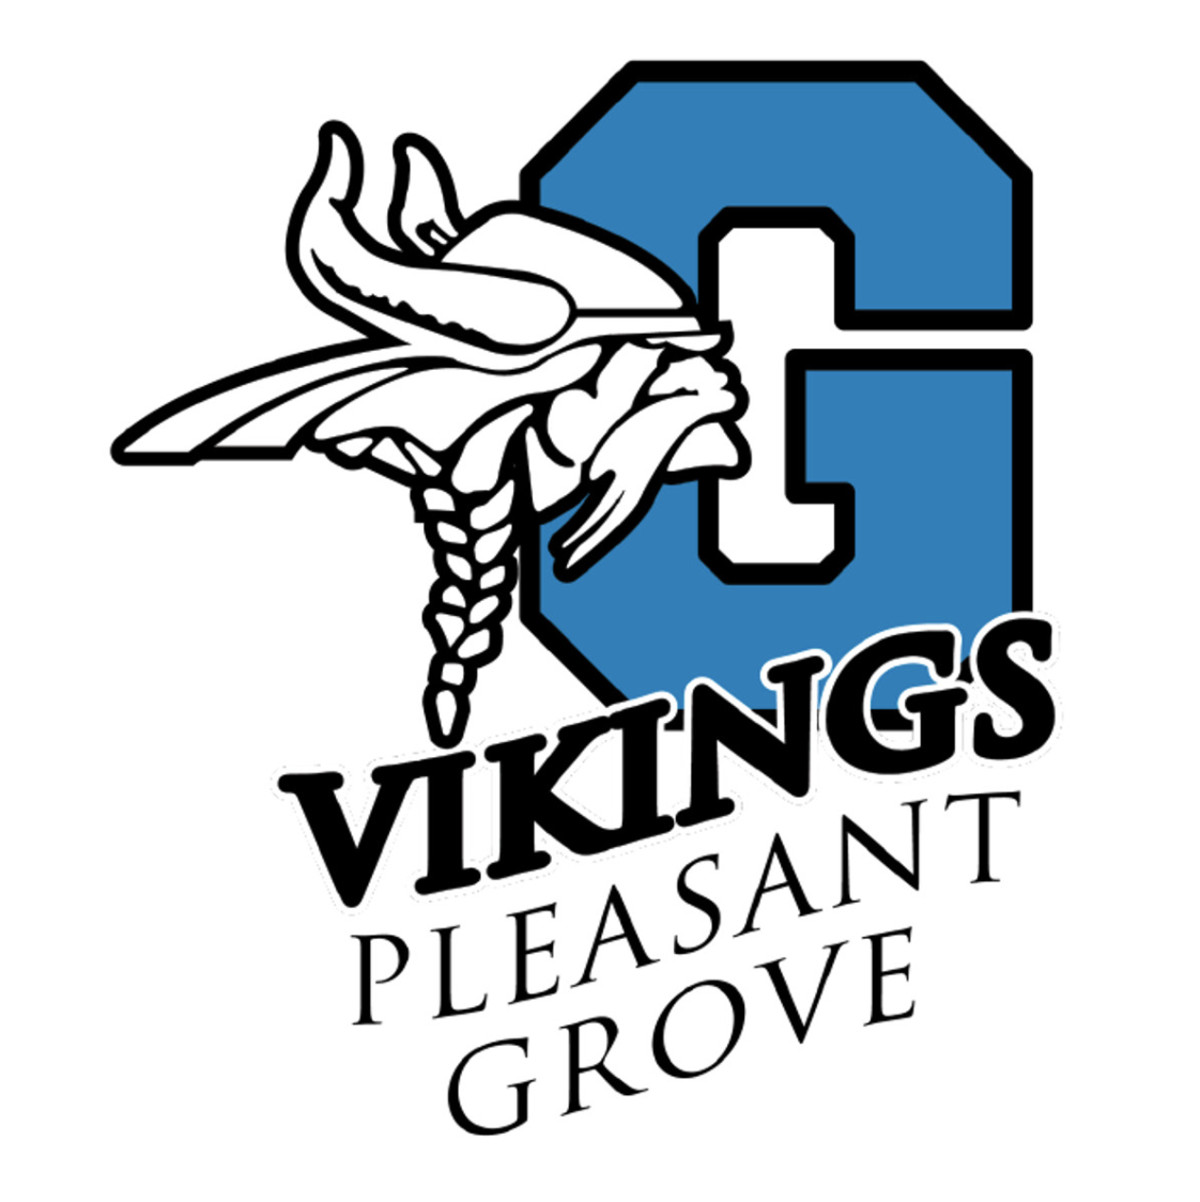 Pleasant Grove Vikings  Club Captains: Carter Pentelute 801-709-9278 and Devin Downs 385-335-4515  Check out the PGHS Spikeball Instagram  @pghs_roundnet